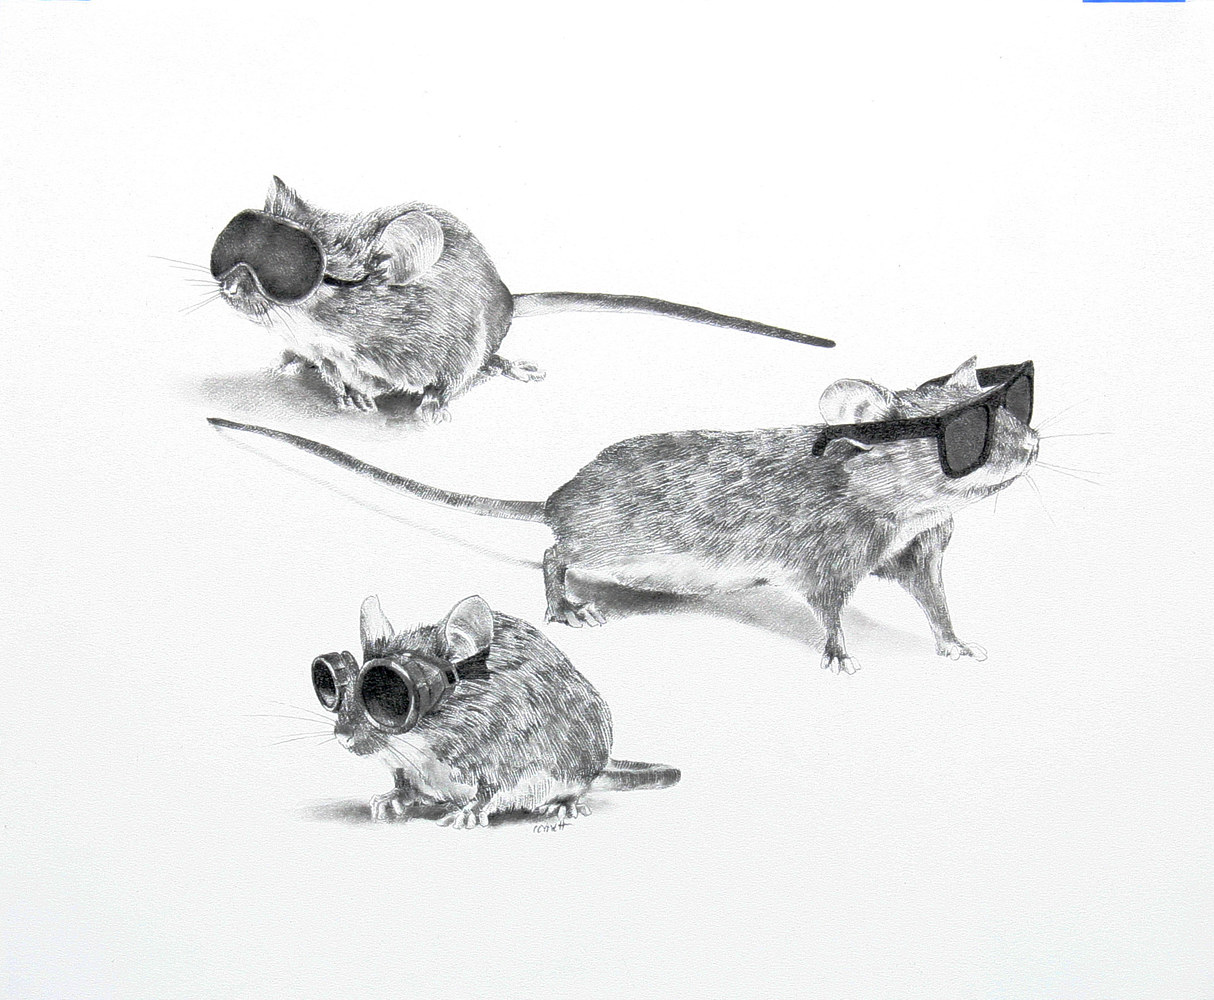 Drawing Three Blind Mice by Ellen Cornett